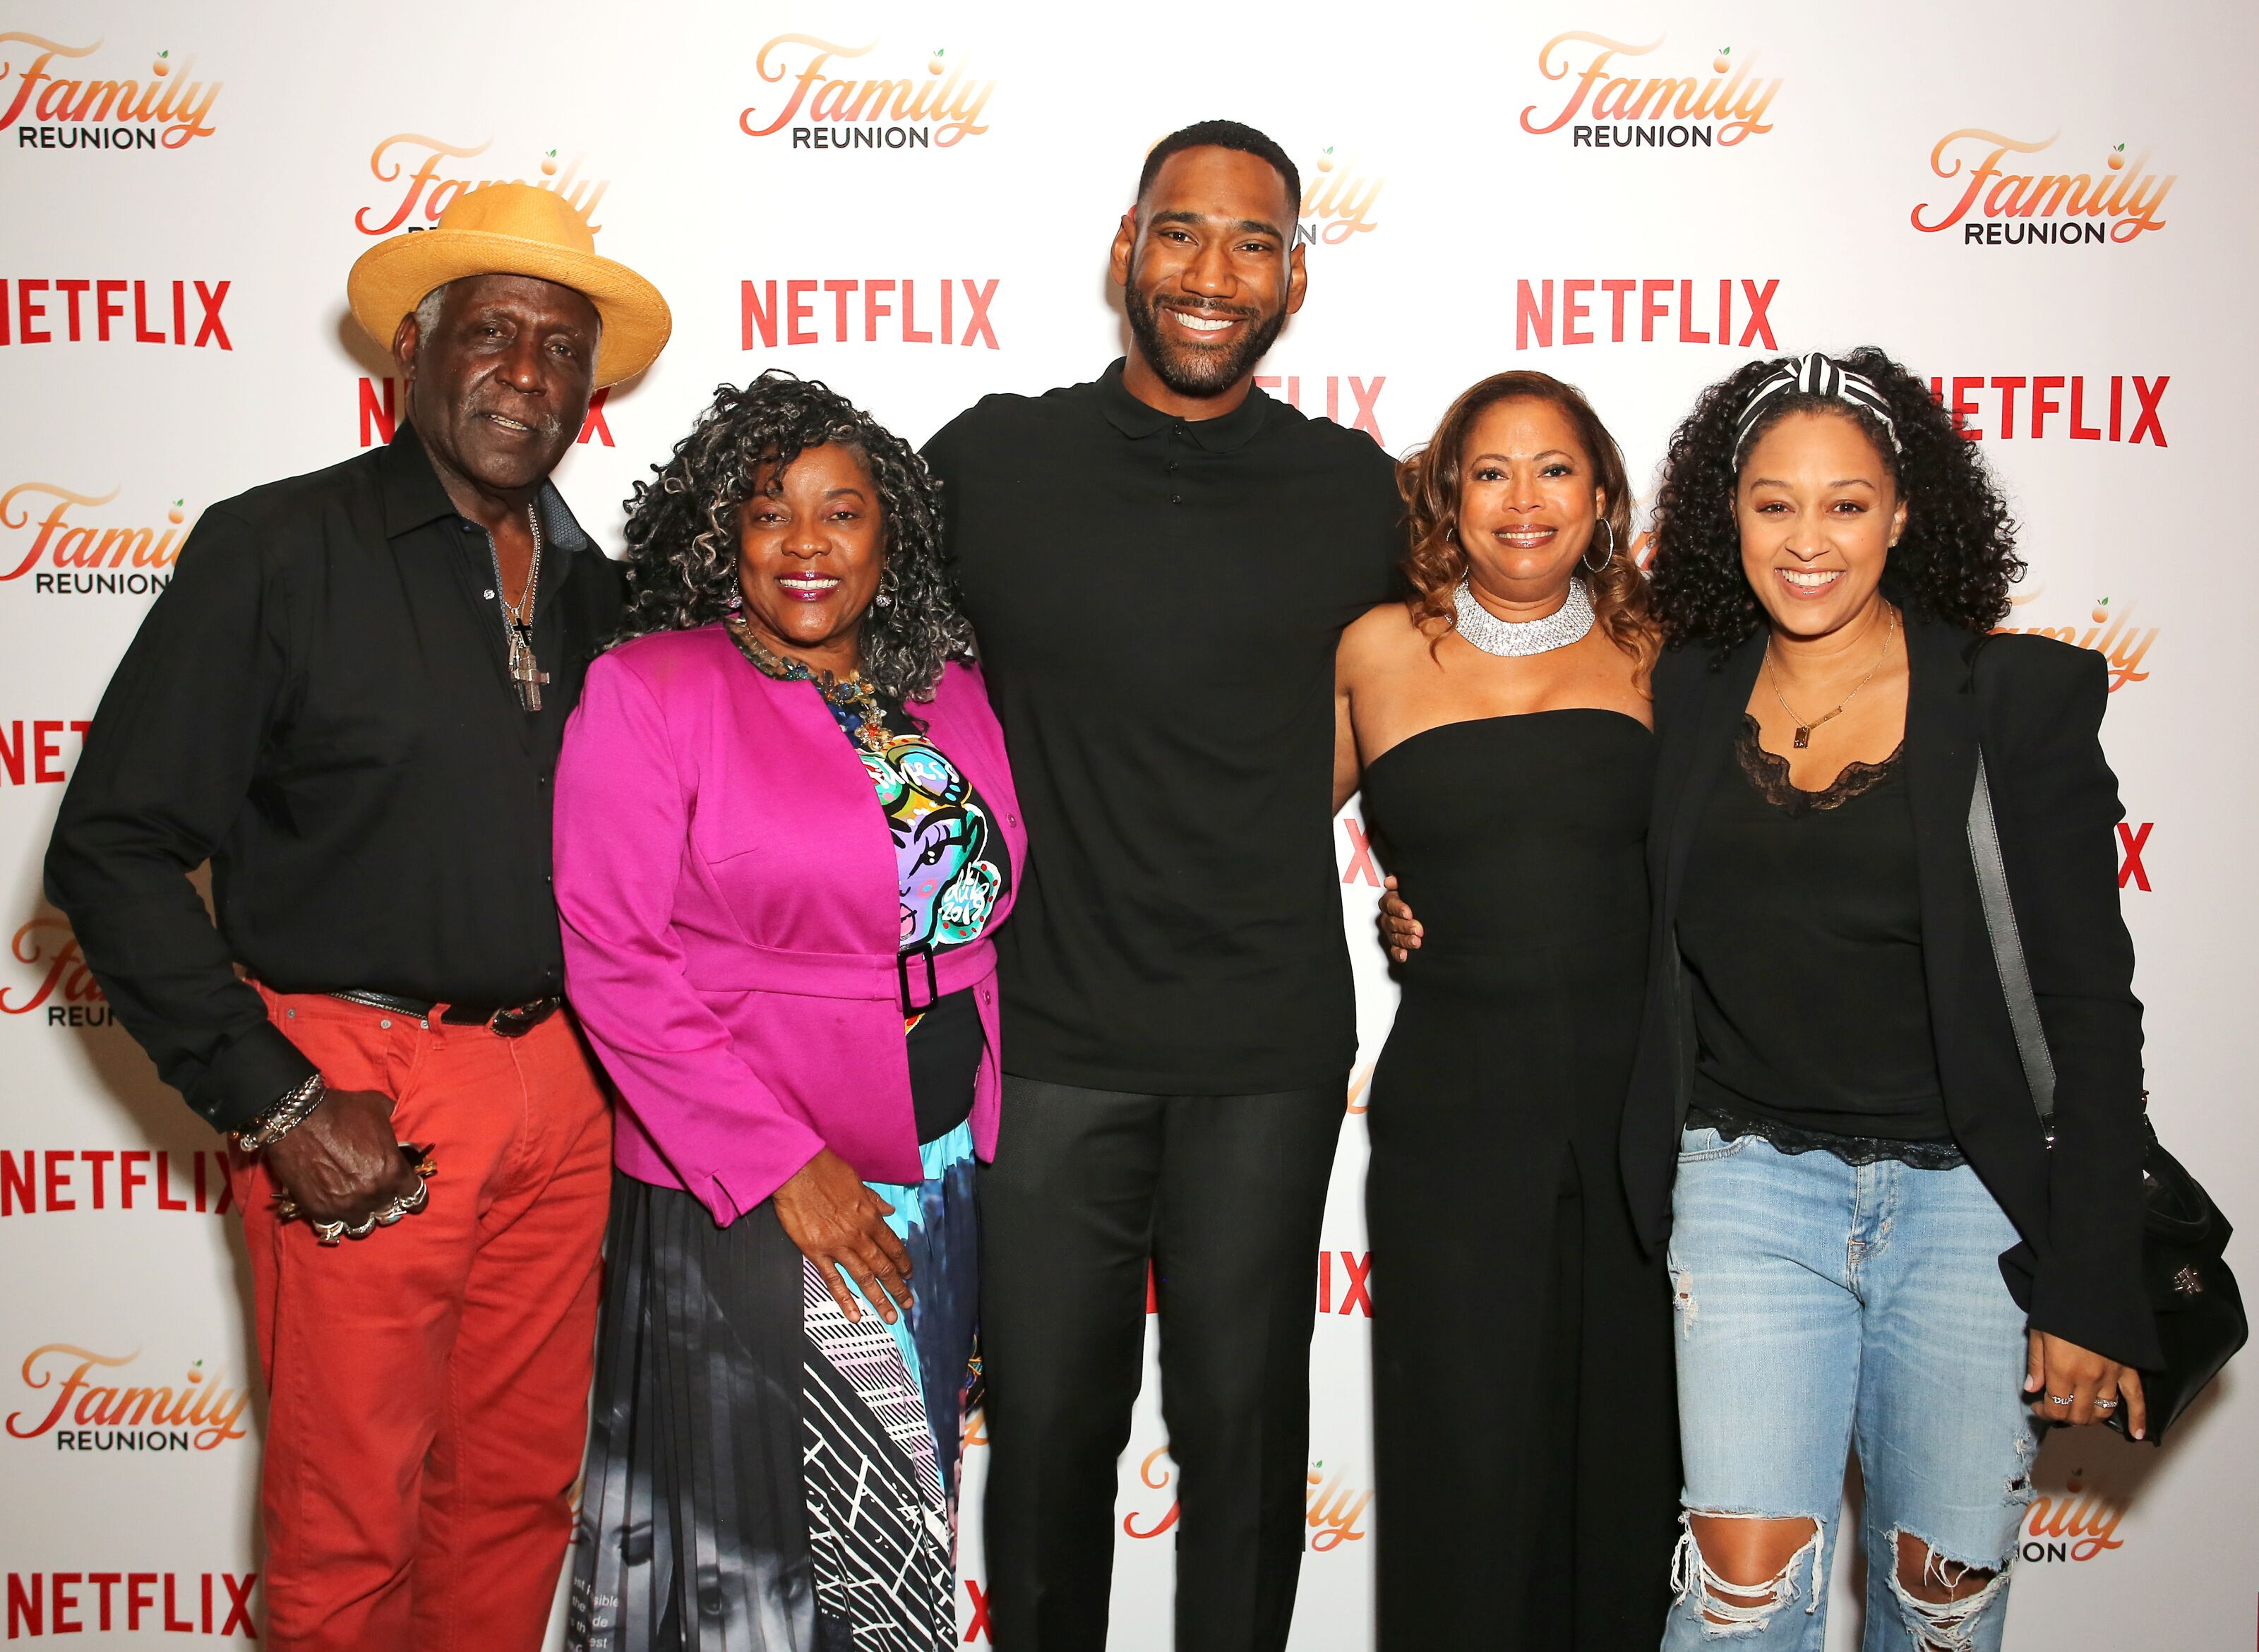 4 questions for Family Reunion Season 2